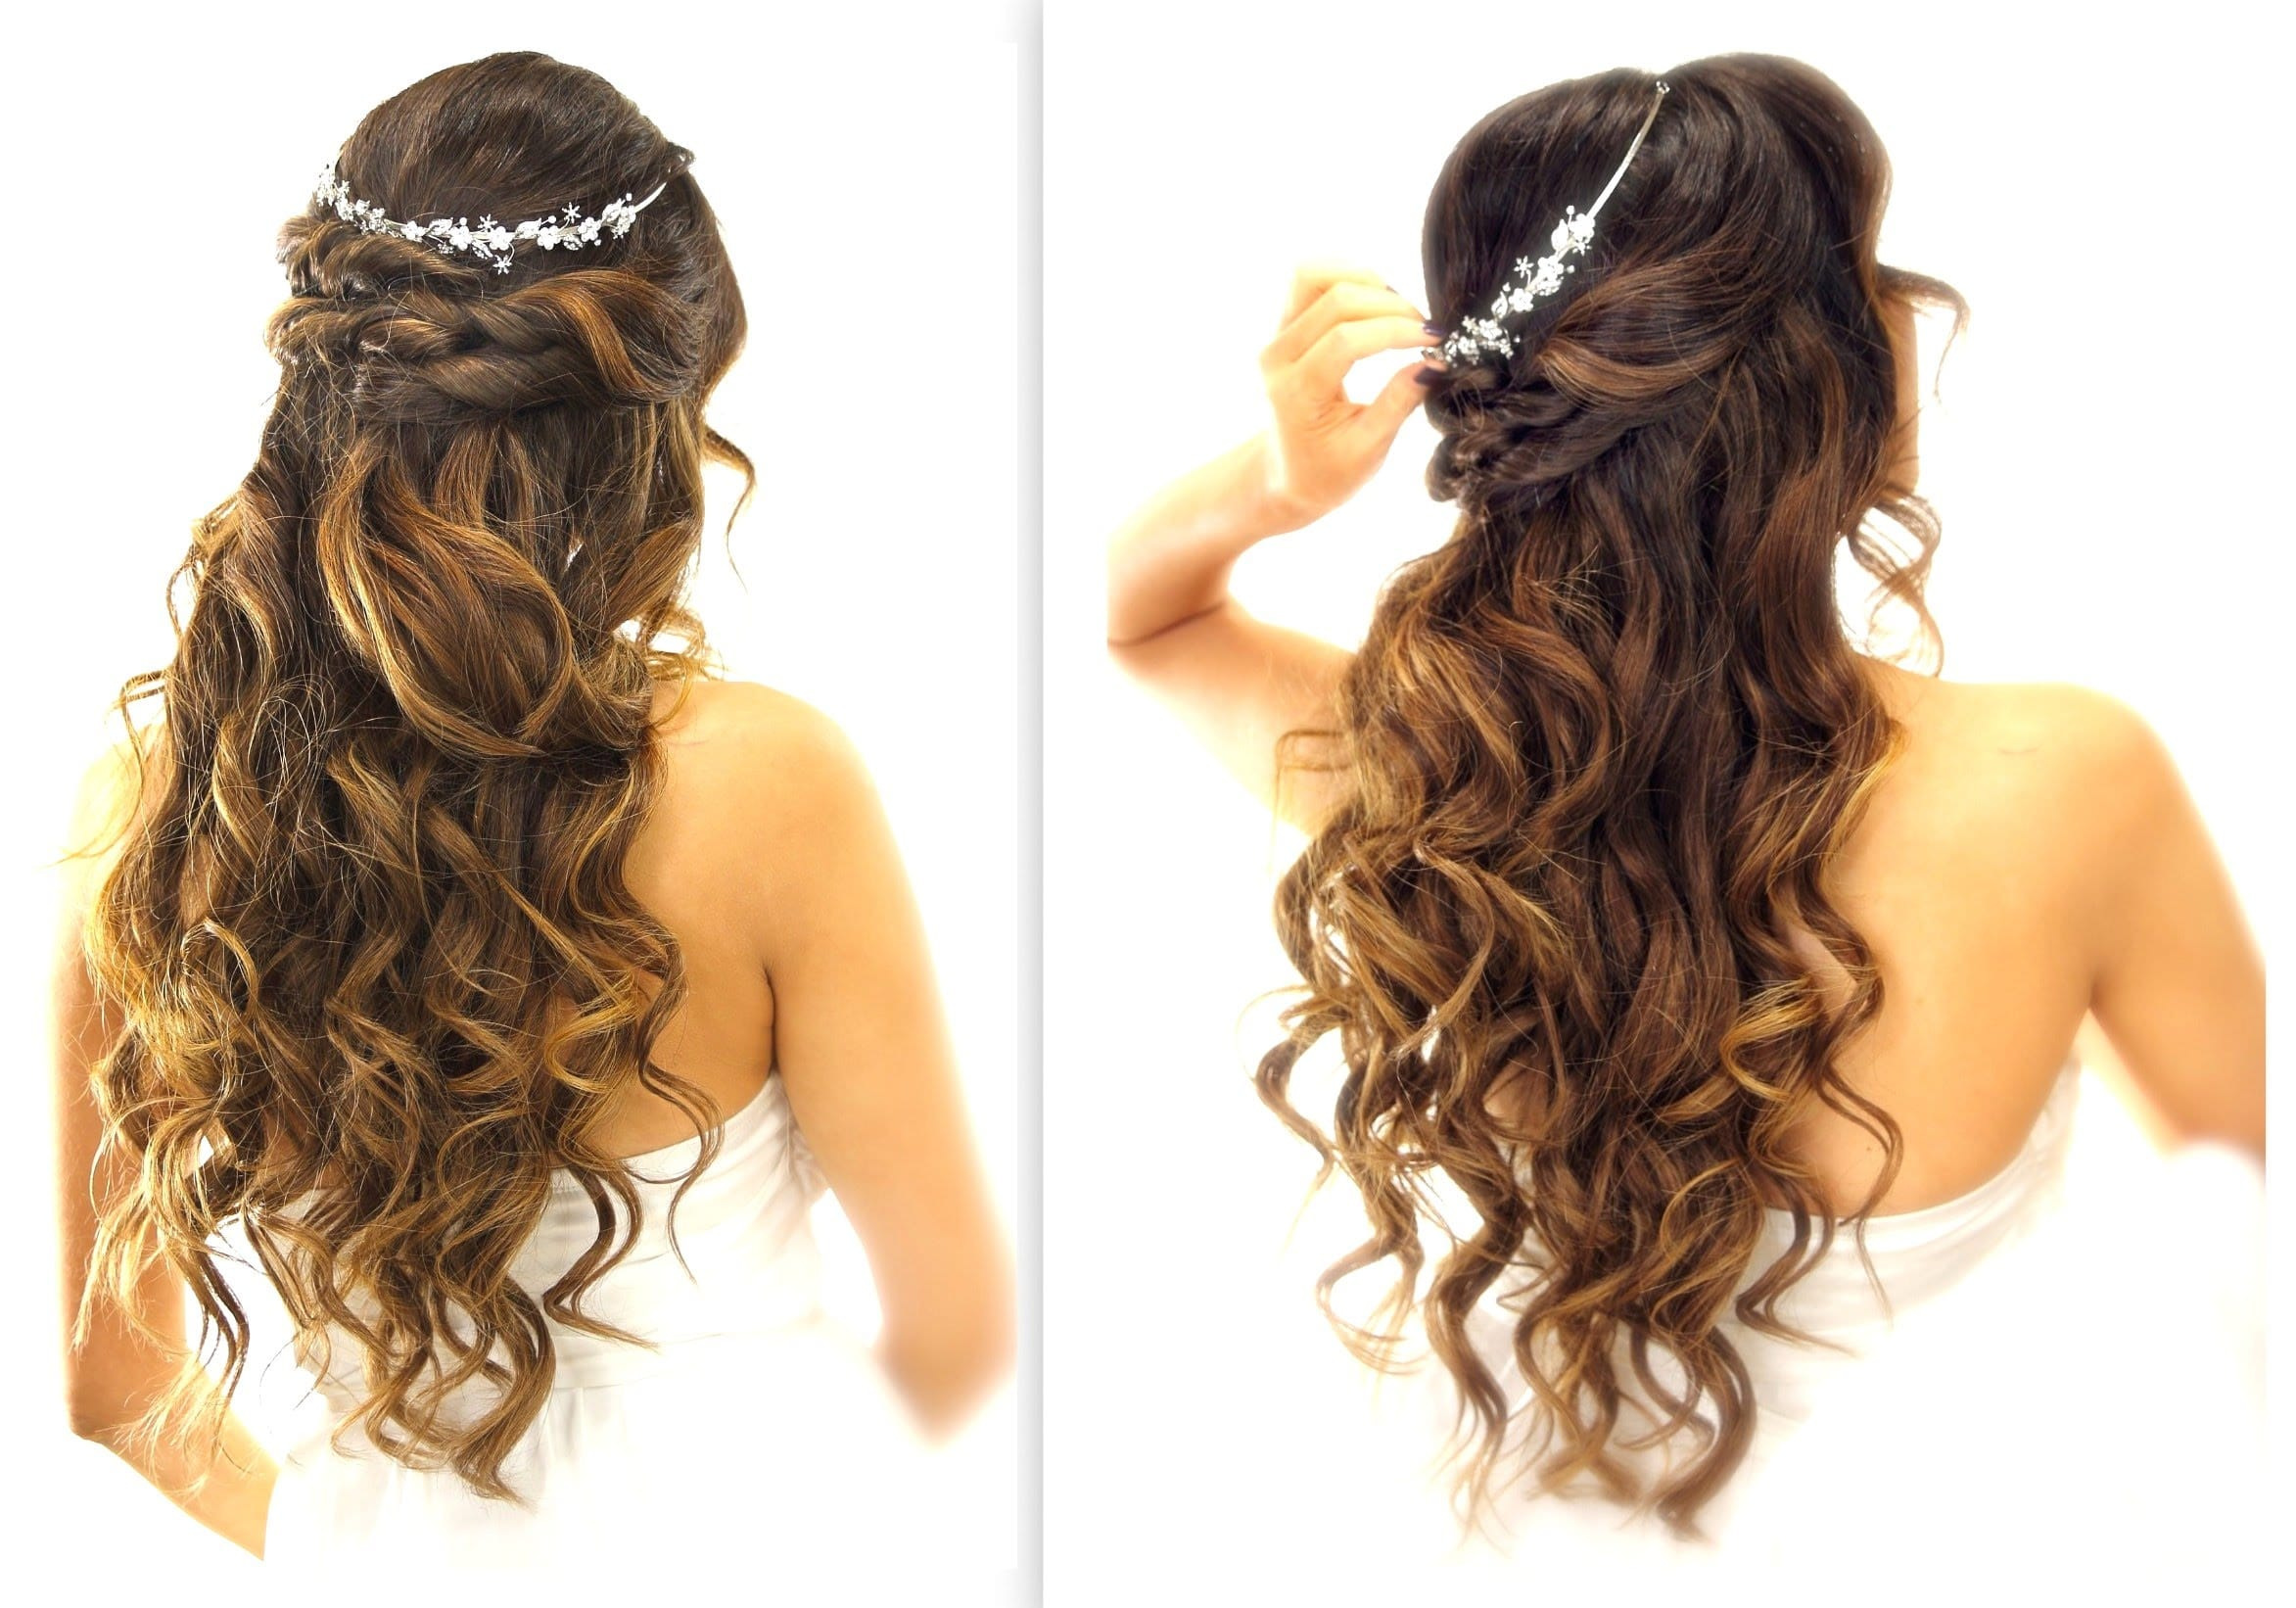 Western Hair Styles: 30+ Wedding Hairstyles For Brides